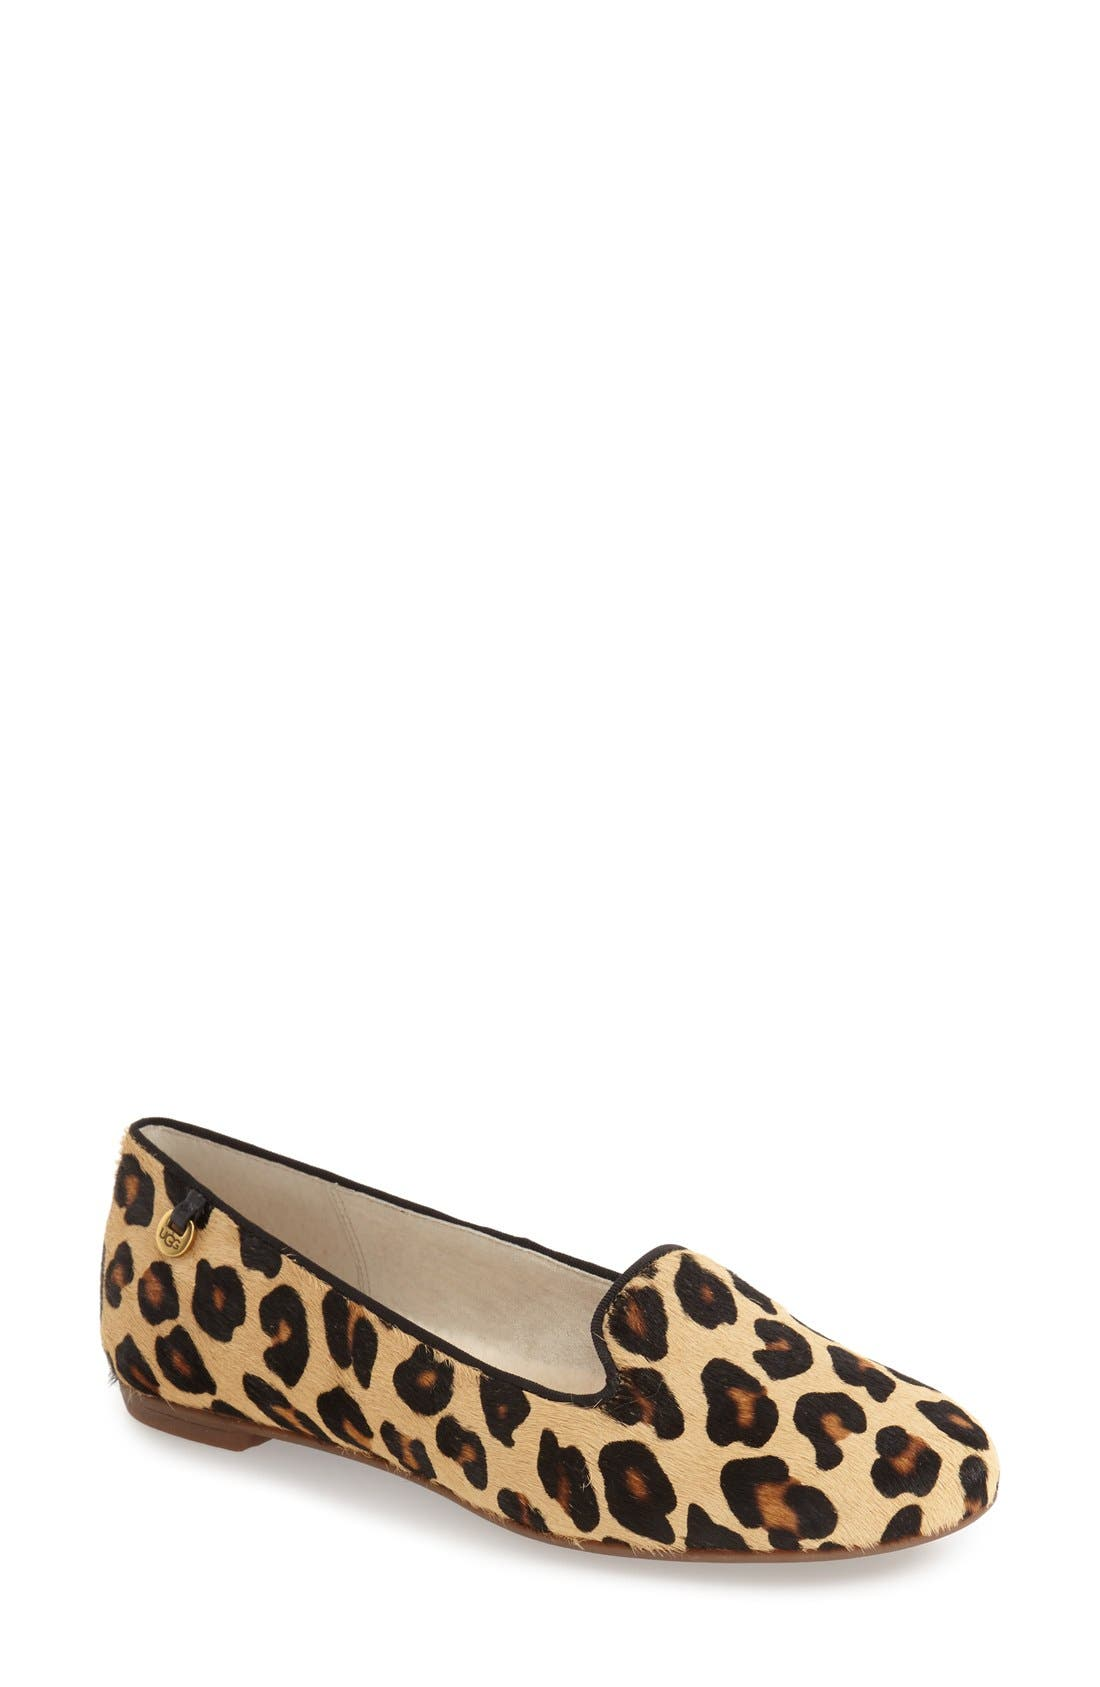 Alternate Image 1 Selected - UGG® 'Blyss' Leopard Spot Calf Hair Flat (Women)